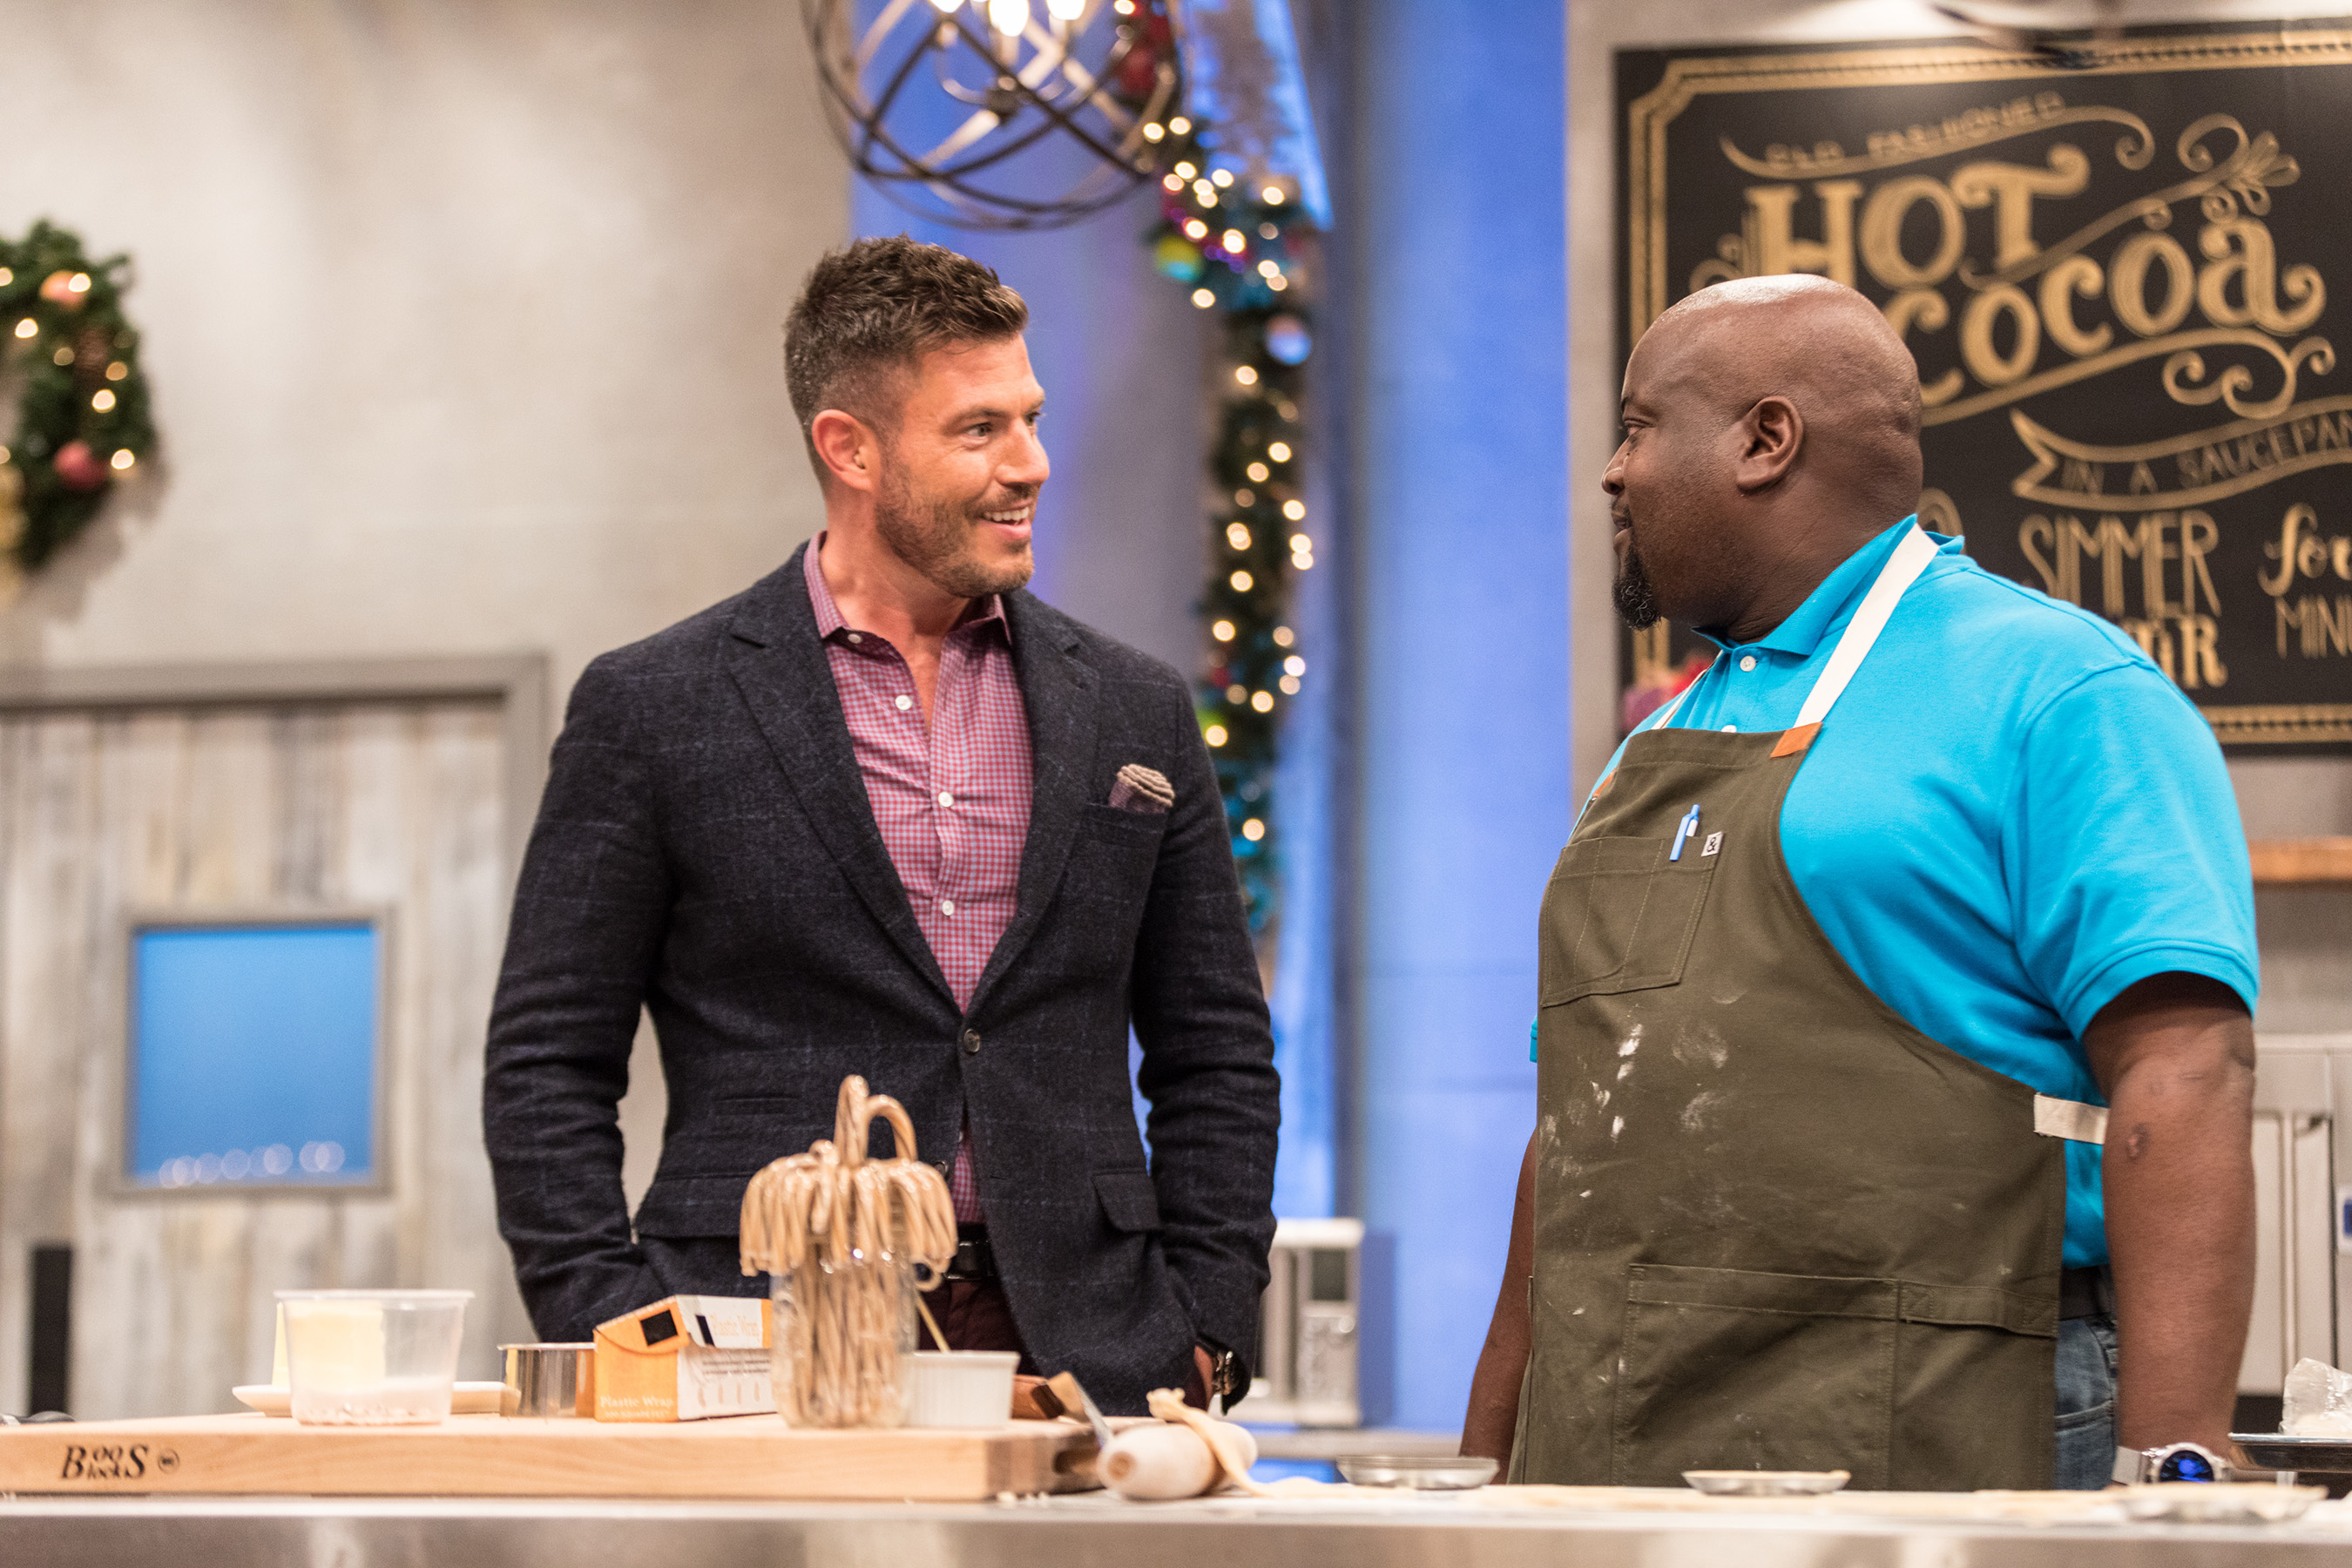 Food Network Announces Holiday Programming With Baking And Cookie